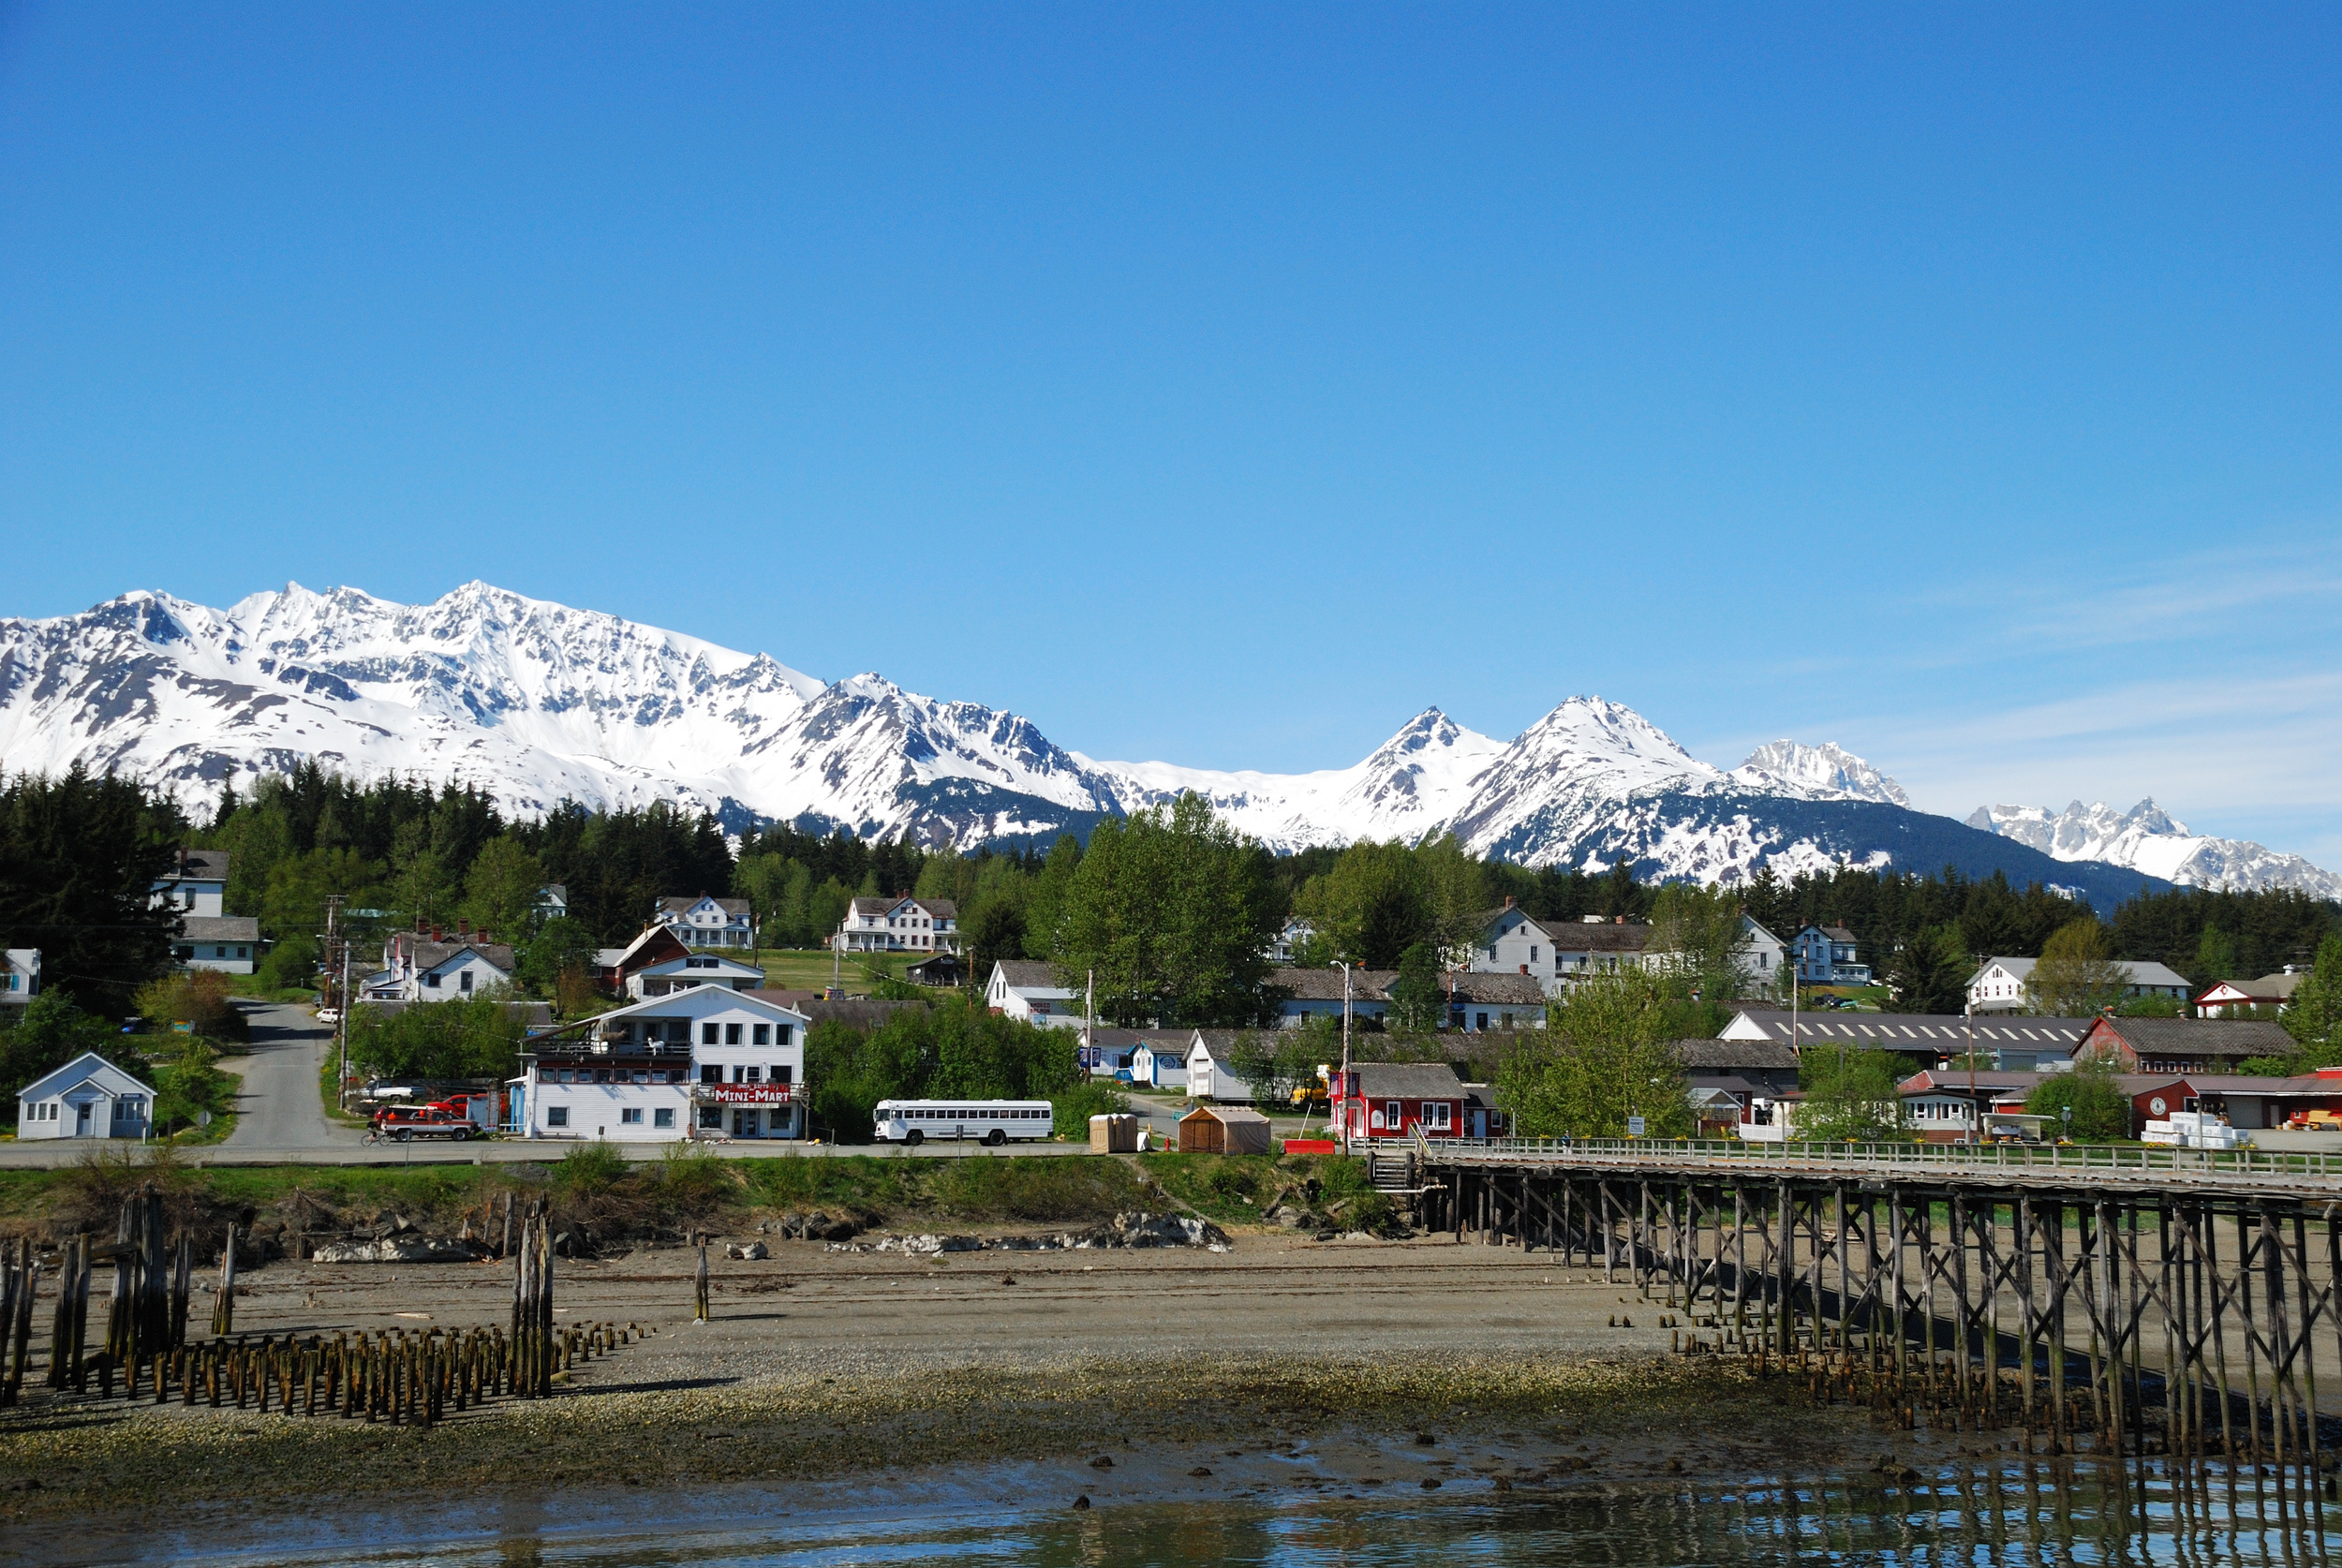 Haines, Alaska - Photo by https://www.flickr.com/photos/9702212@N03/